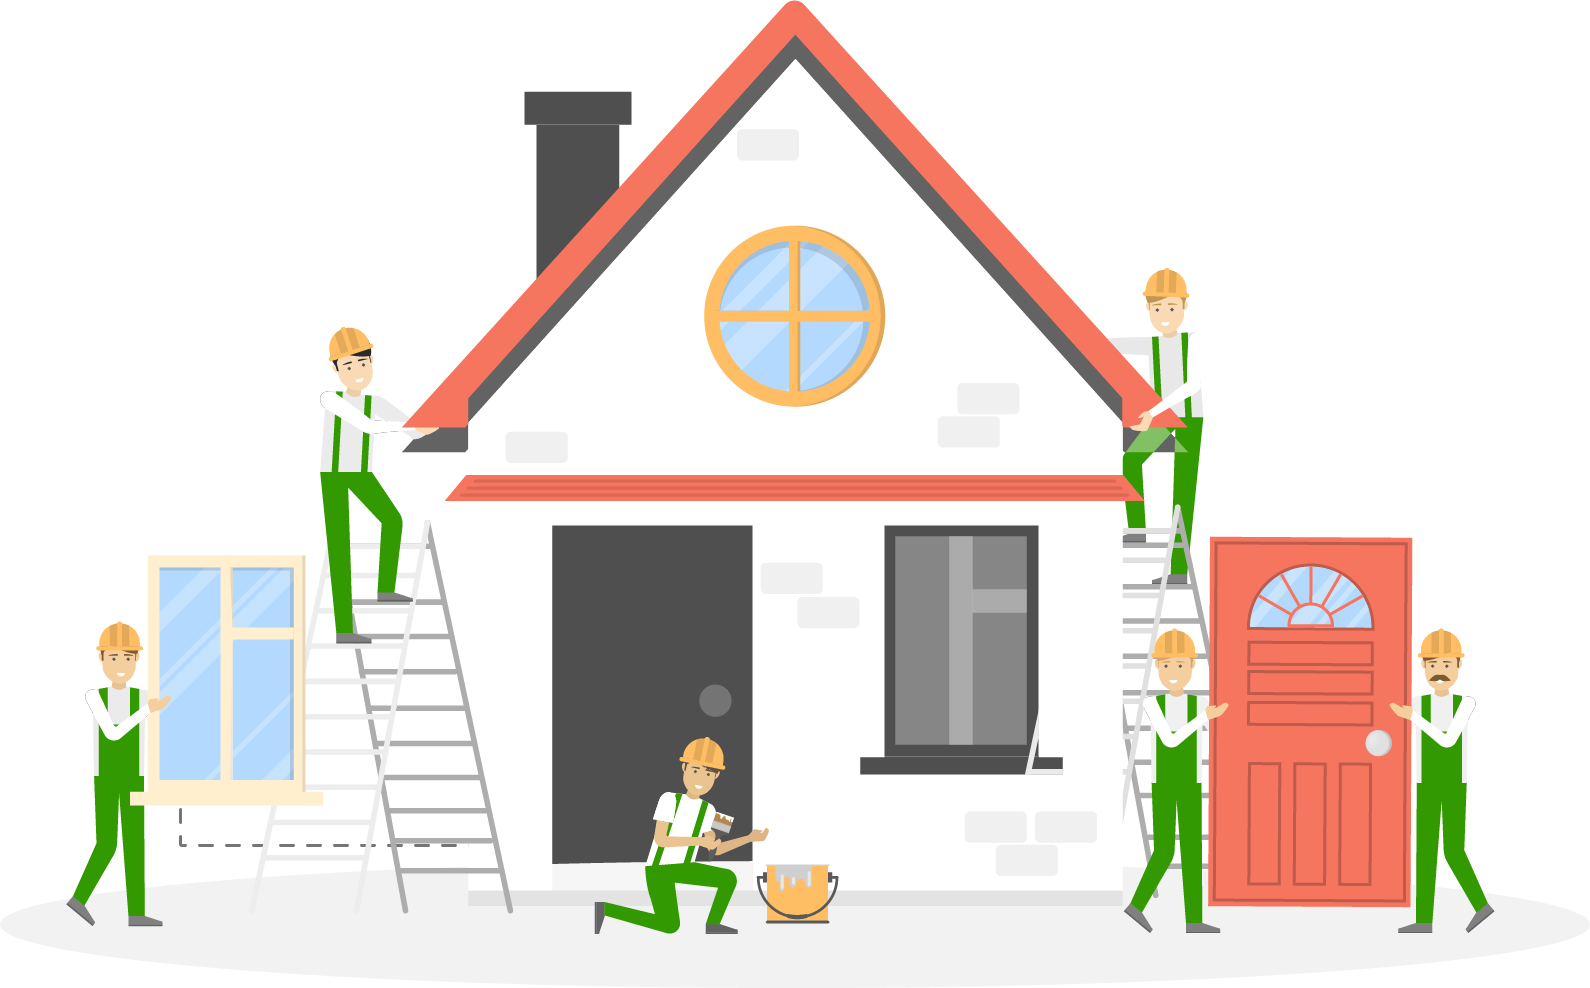 Home Pro Partners Illustration